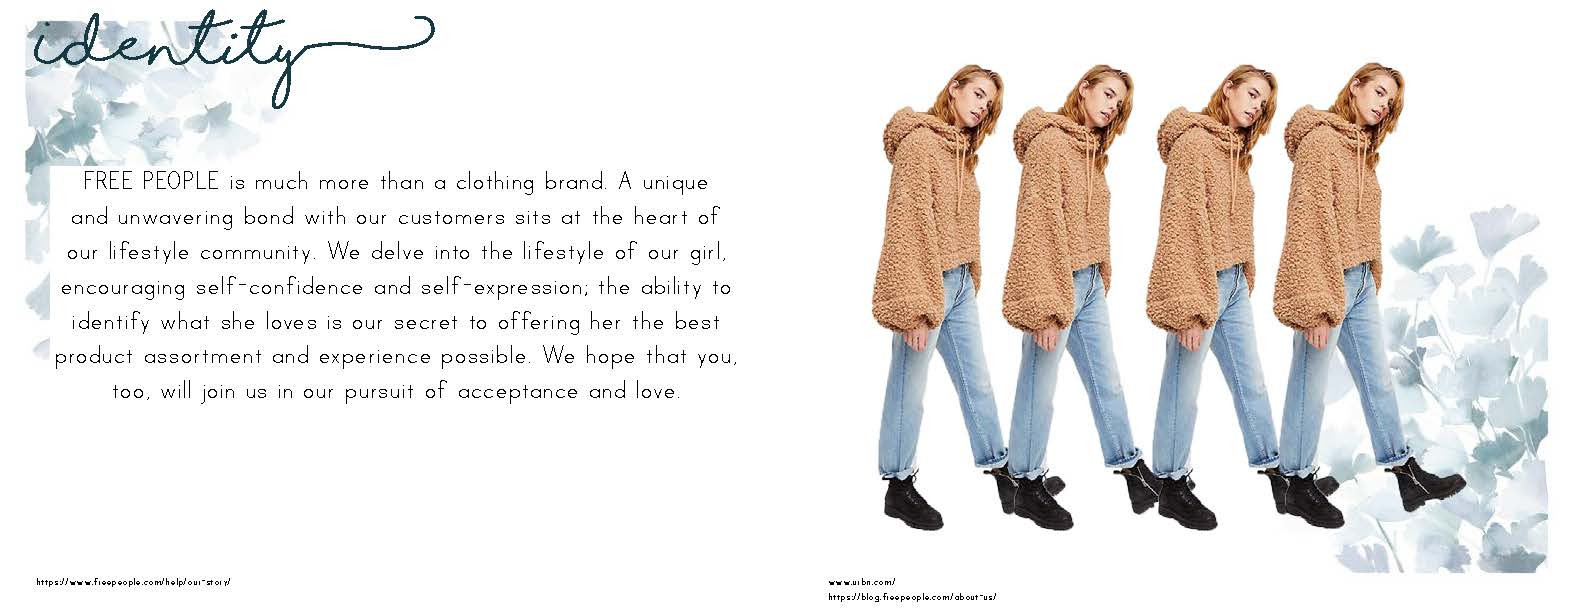 FREE PEOPLE BUYING PROJECT_Page_04.jpg